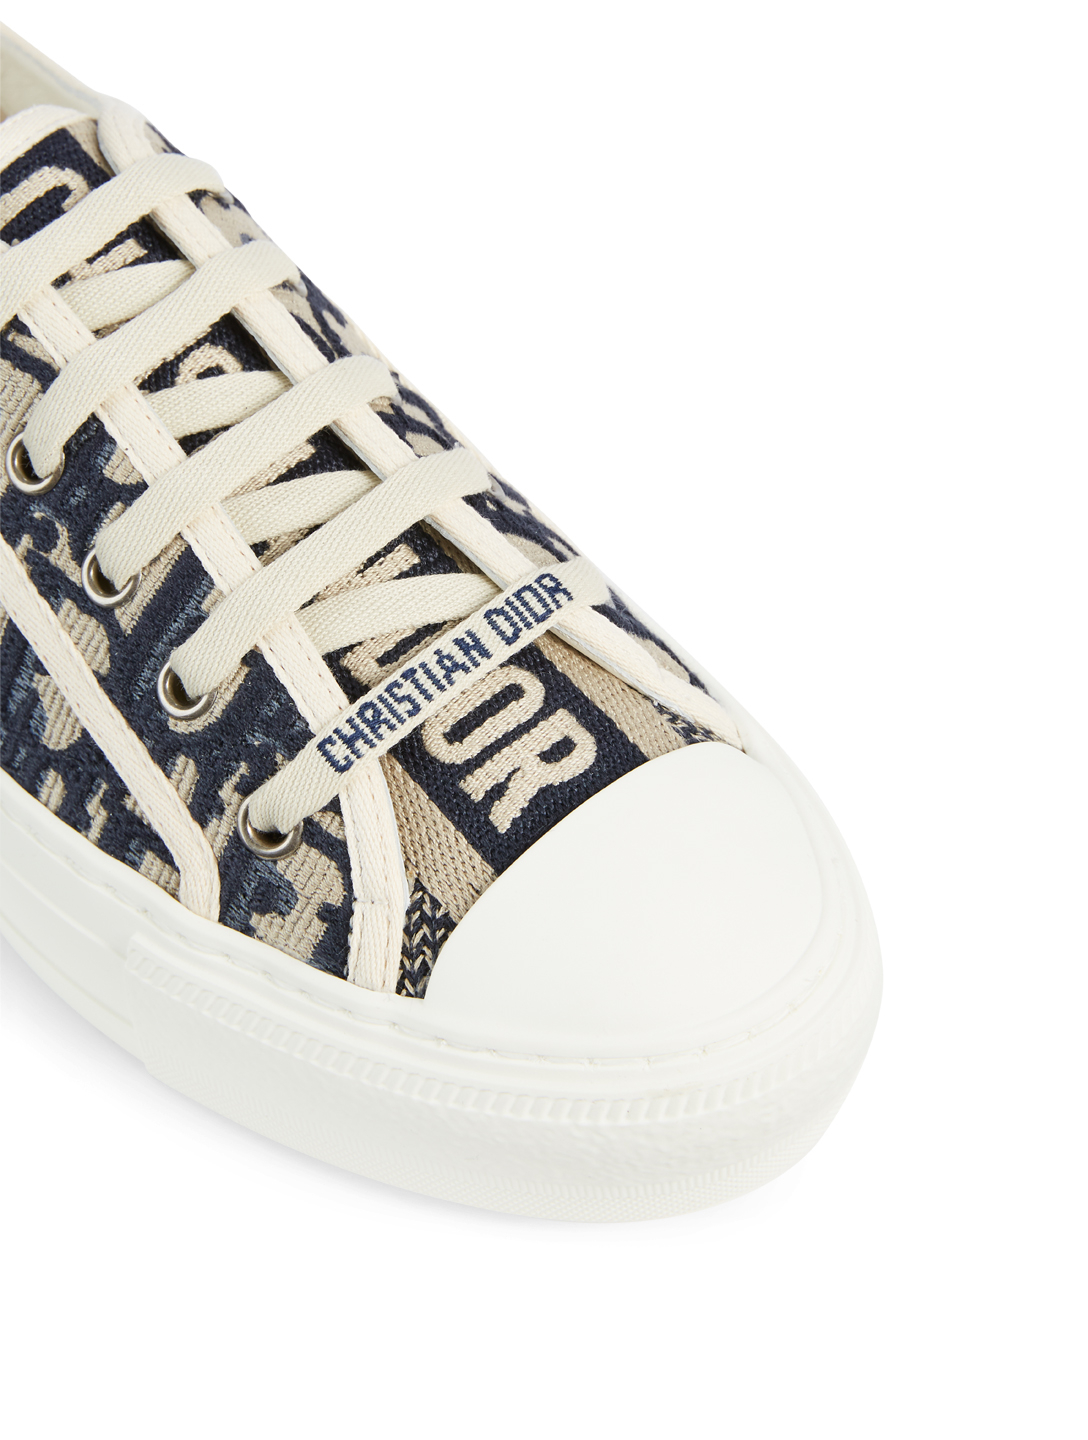 DIOR Walk'n'Dior Dior Oblique Embroidered Cotton Sneaker Women's Blue